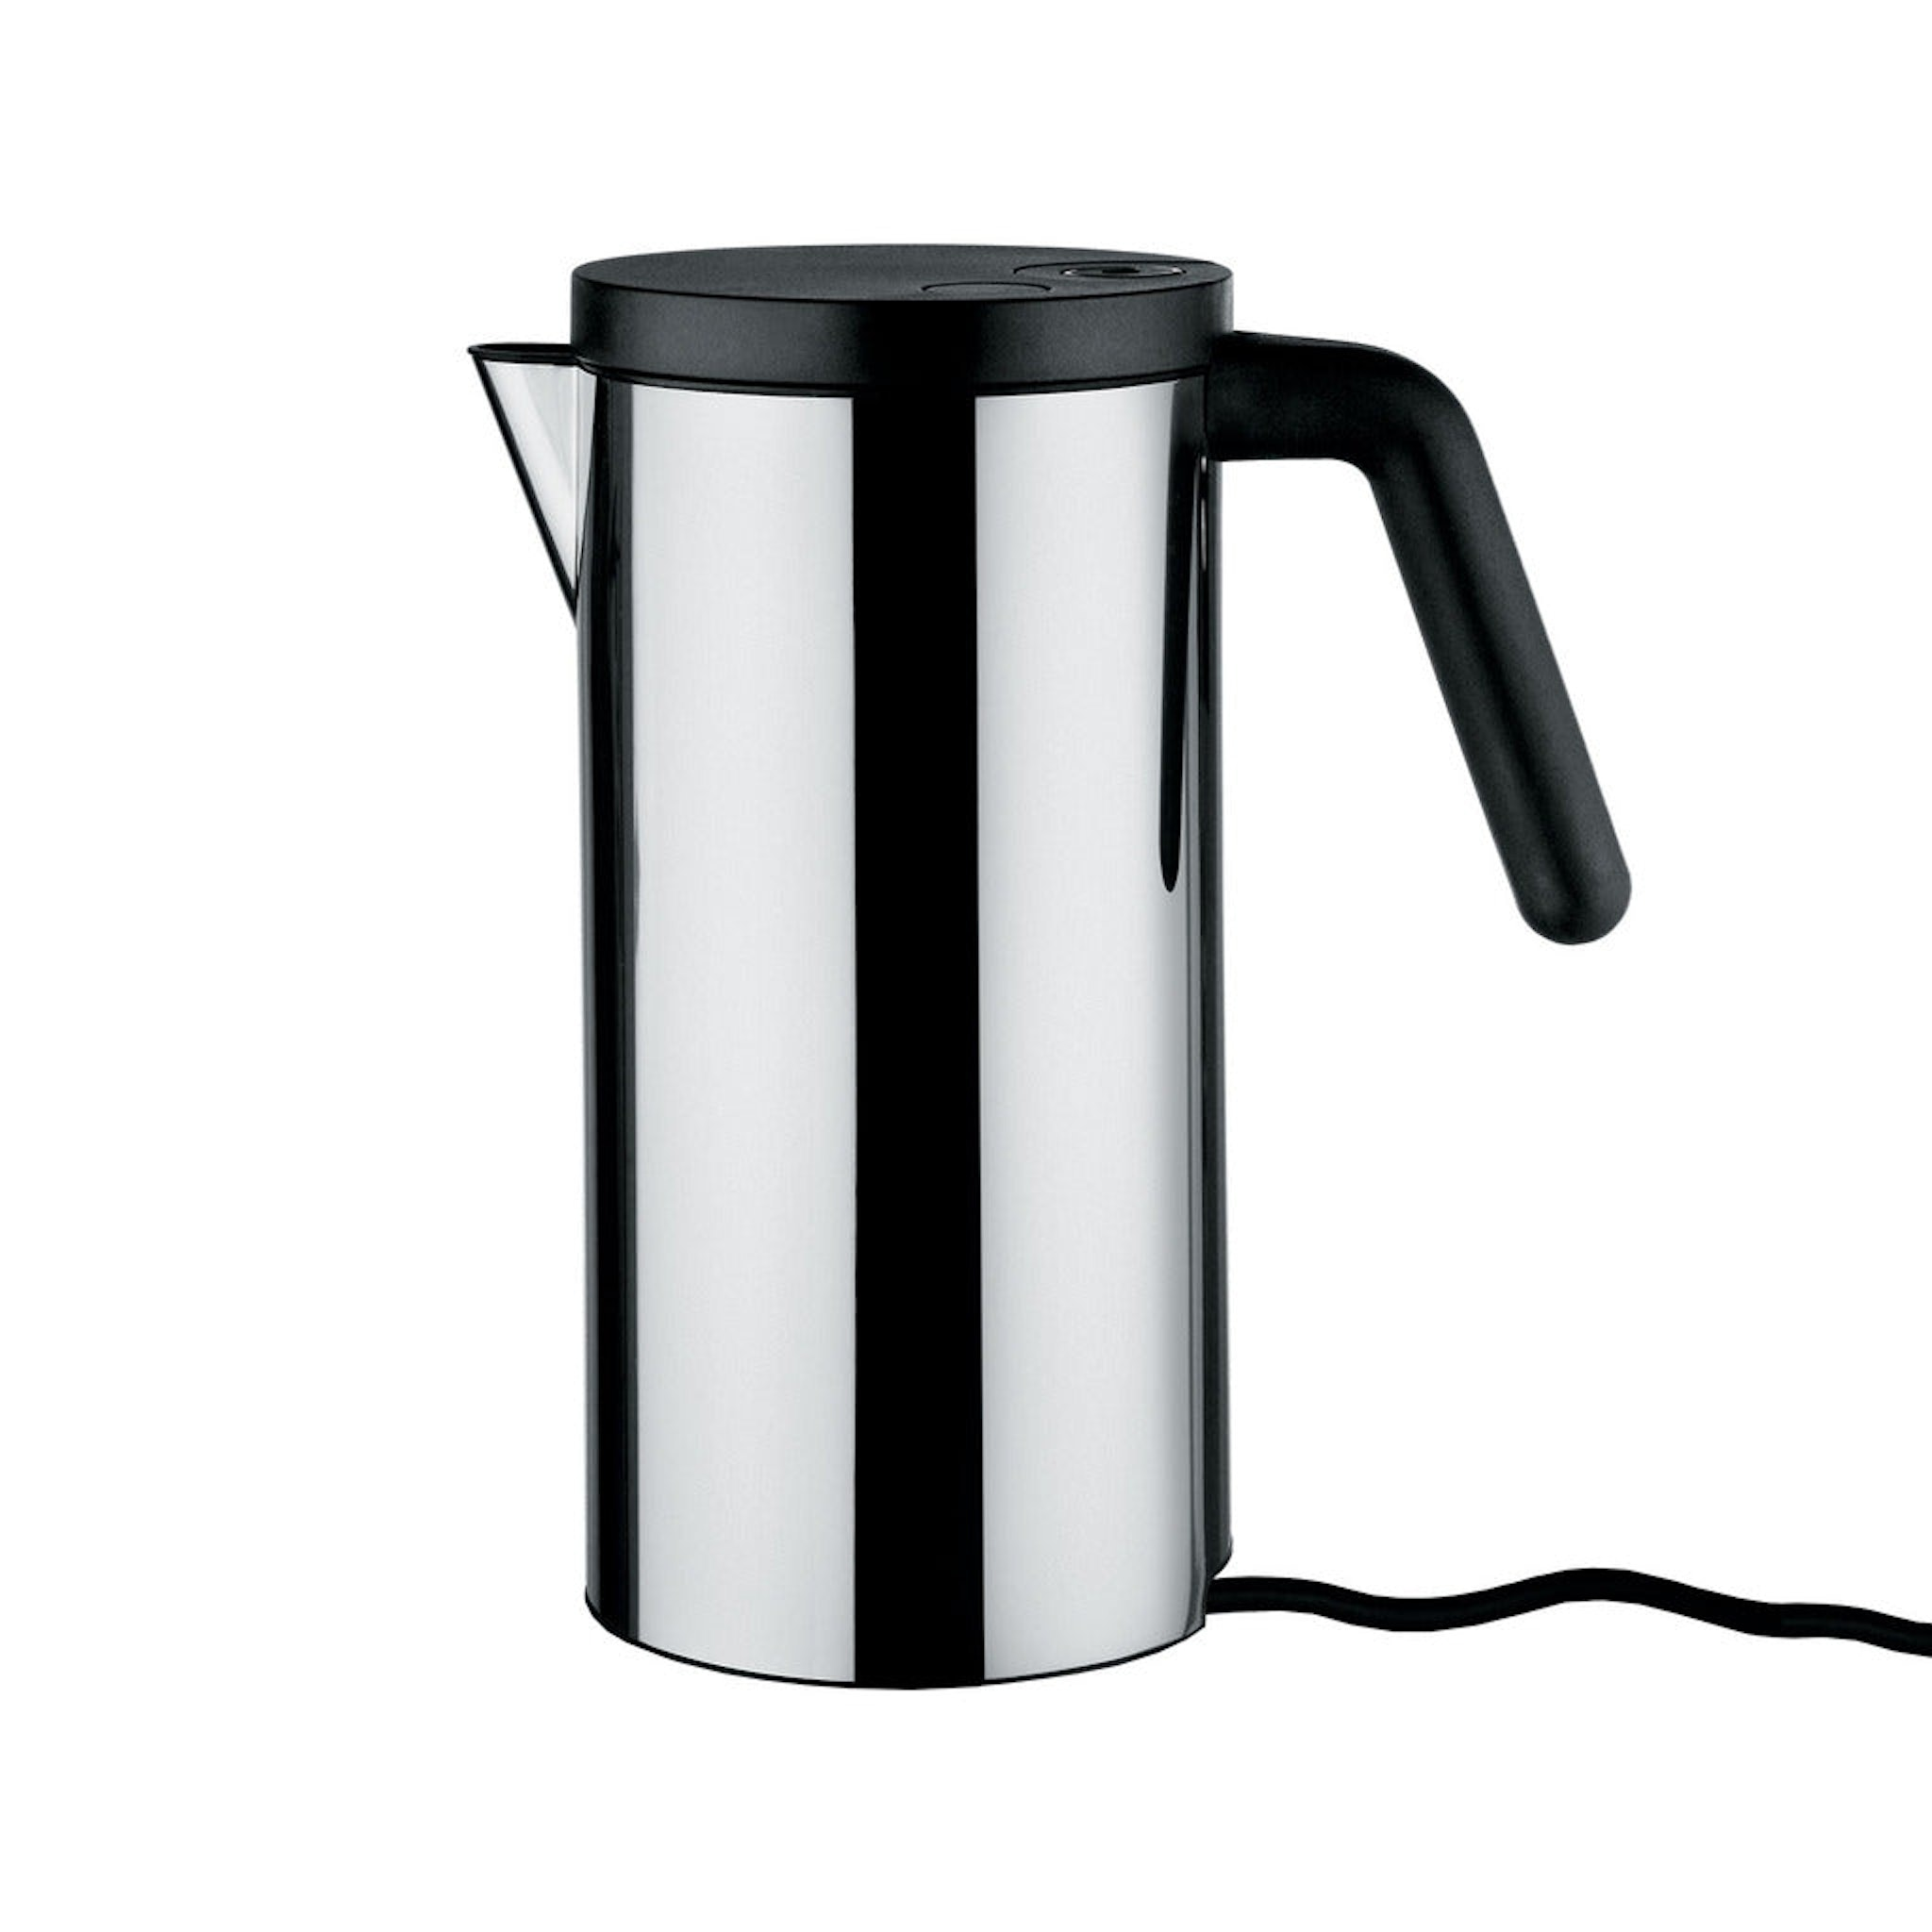 Hot it Kettle (Black) by Wiel Ares